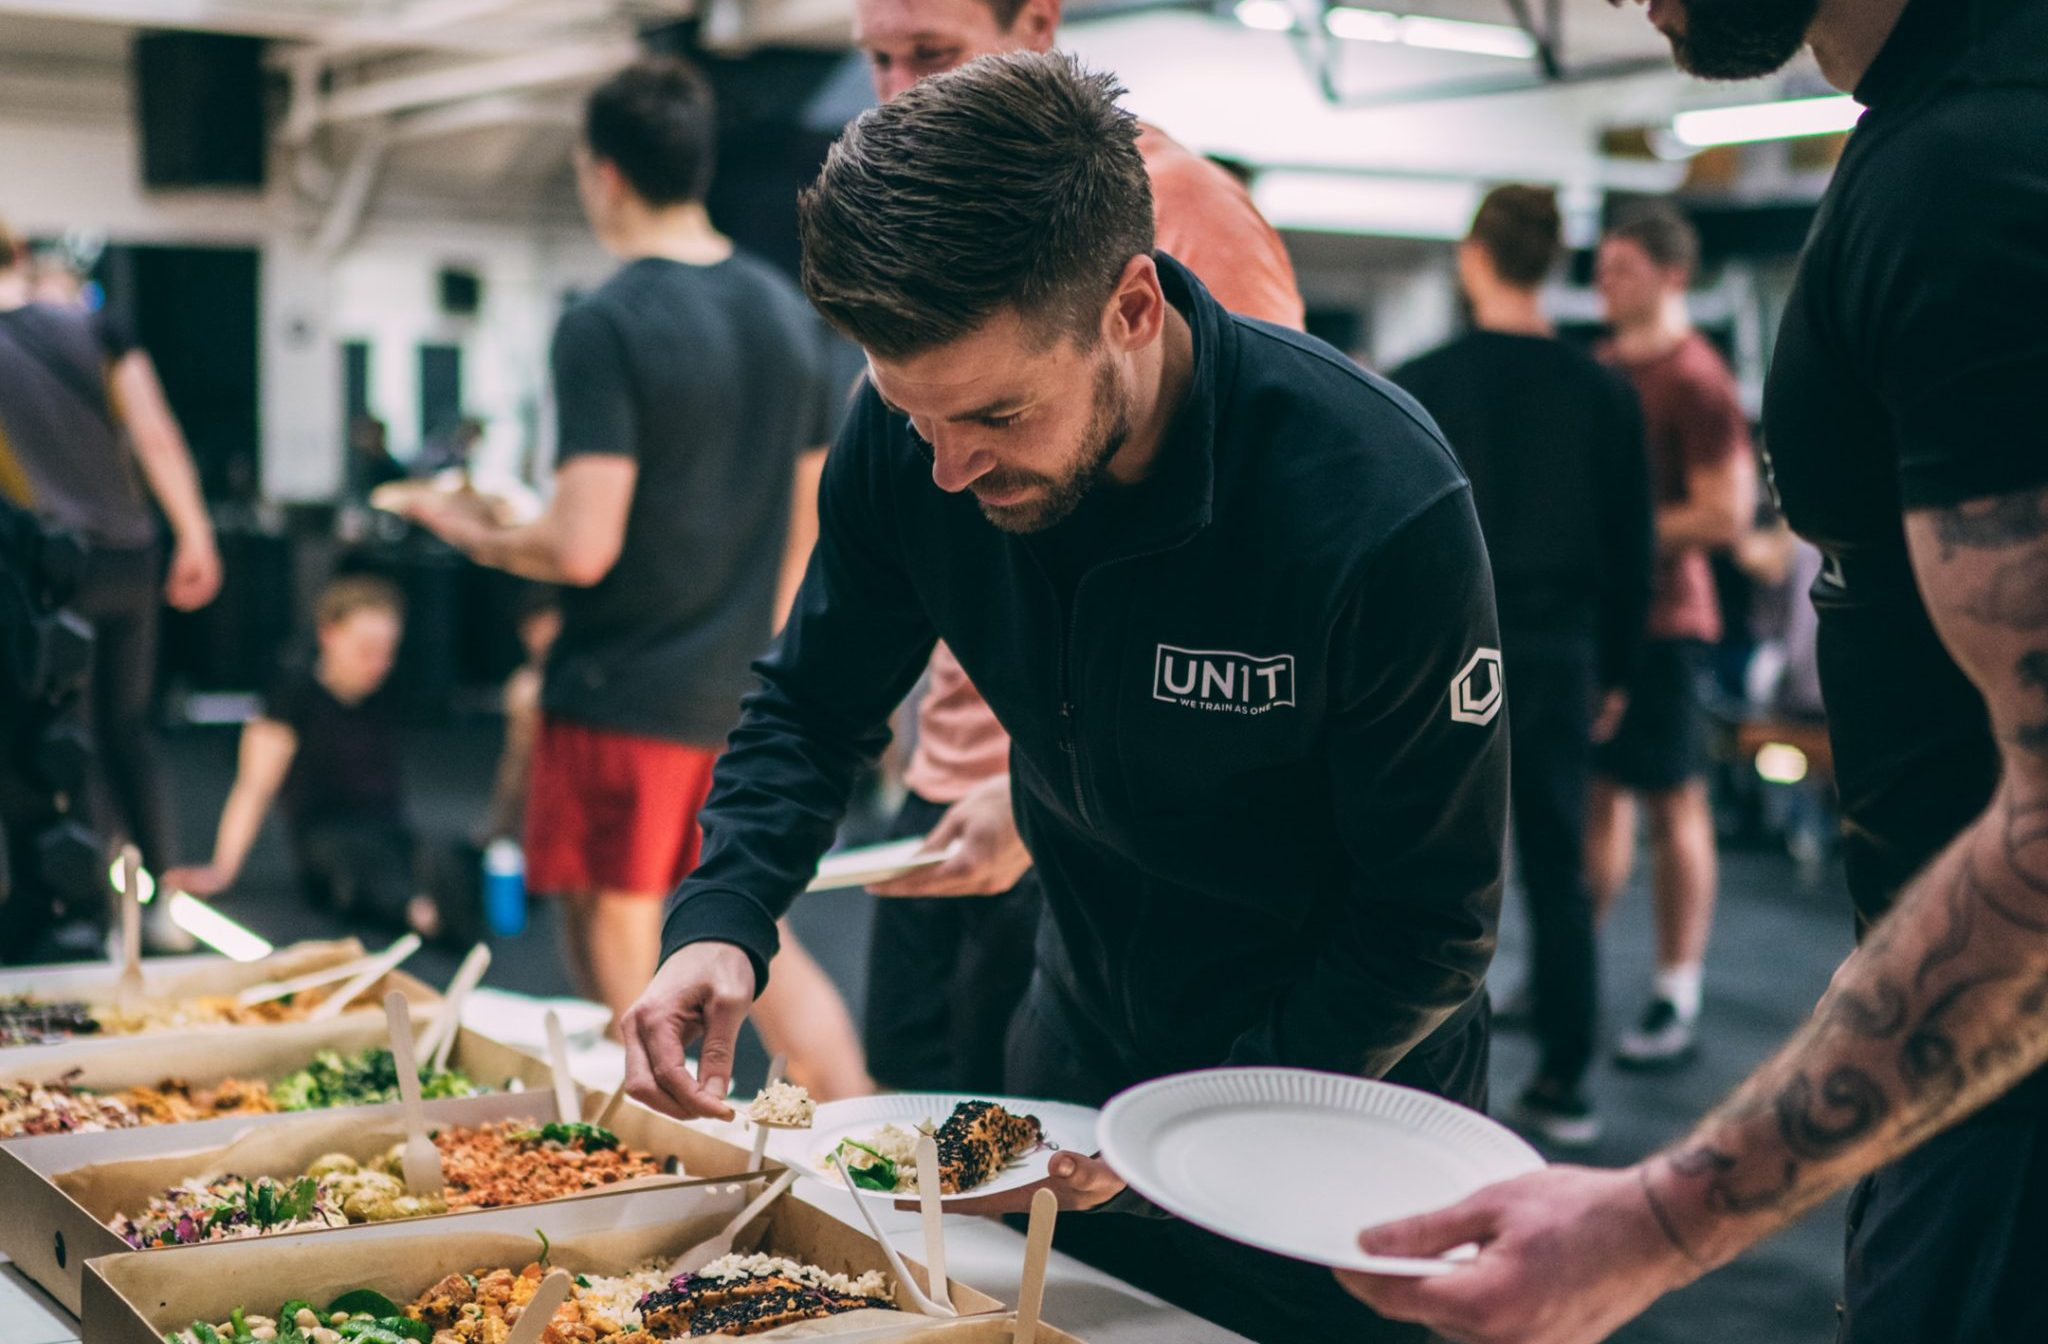 NUTRITIONIST'S TOP TIPS TO STAY HEALTHY DURING COVID-19